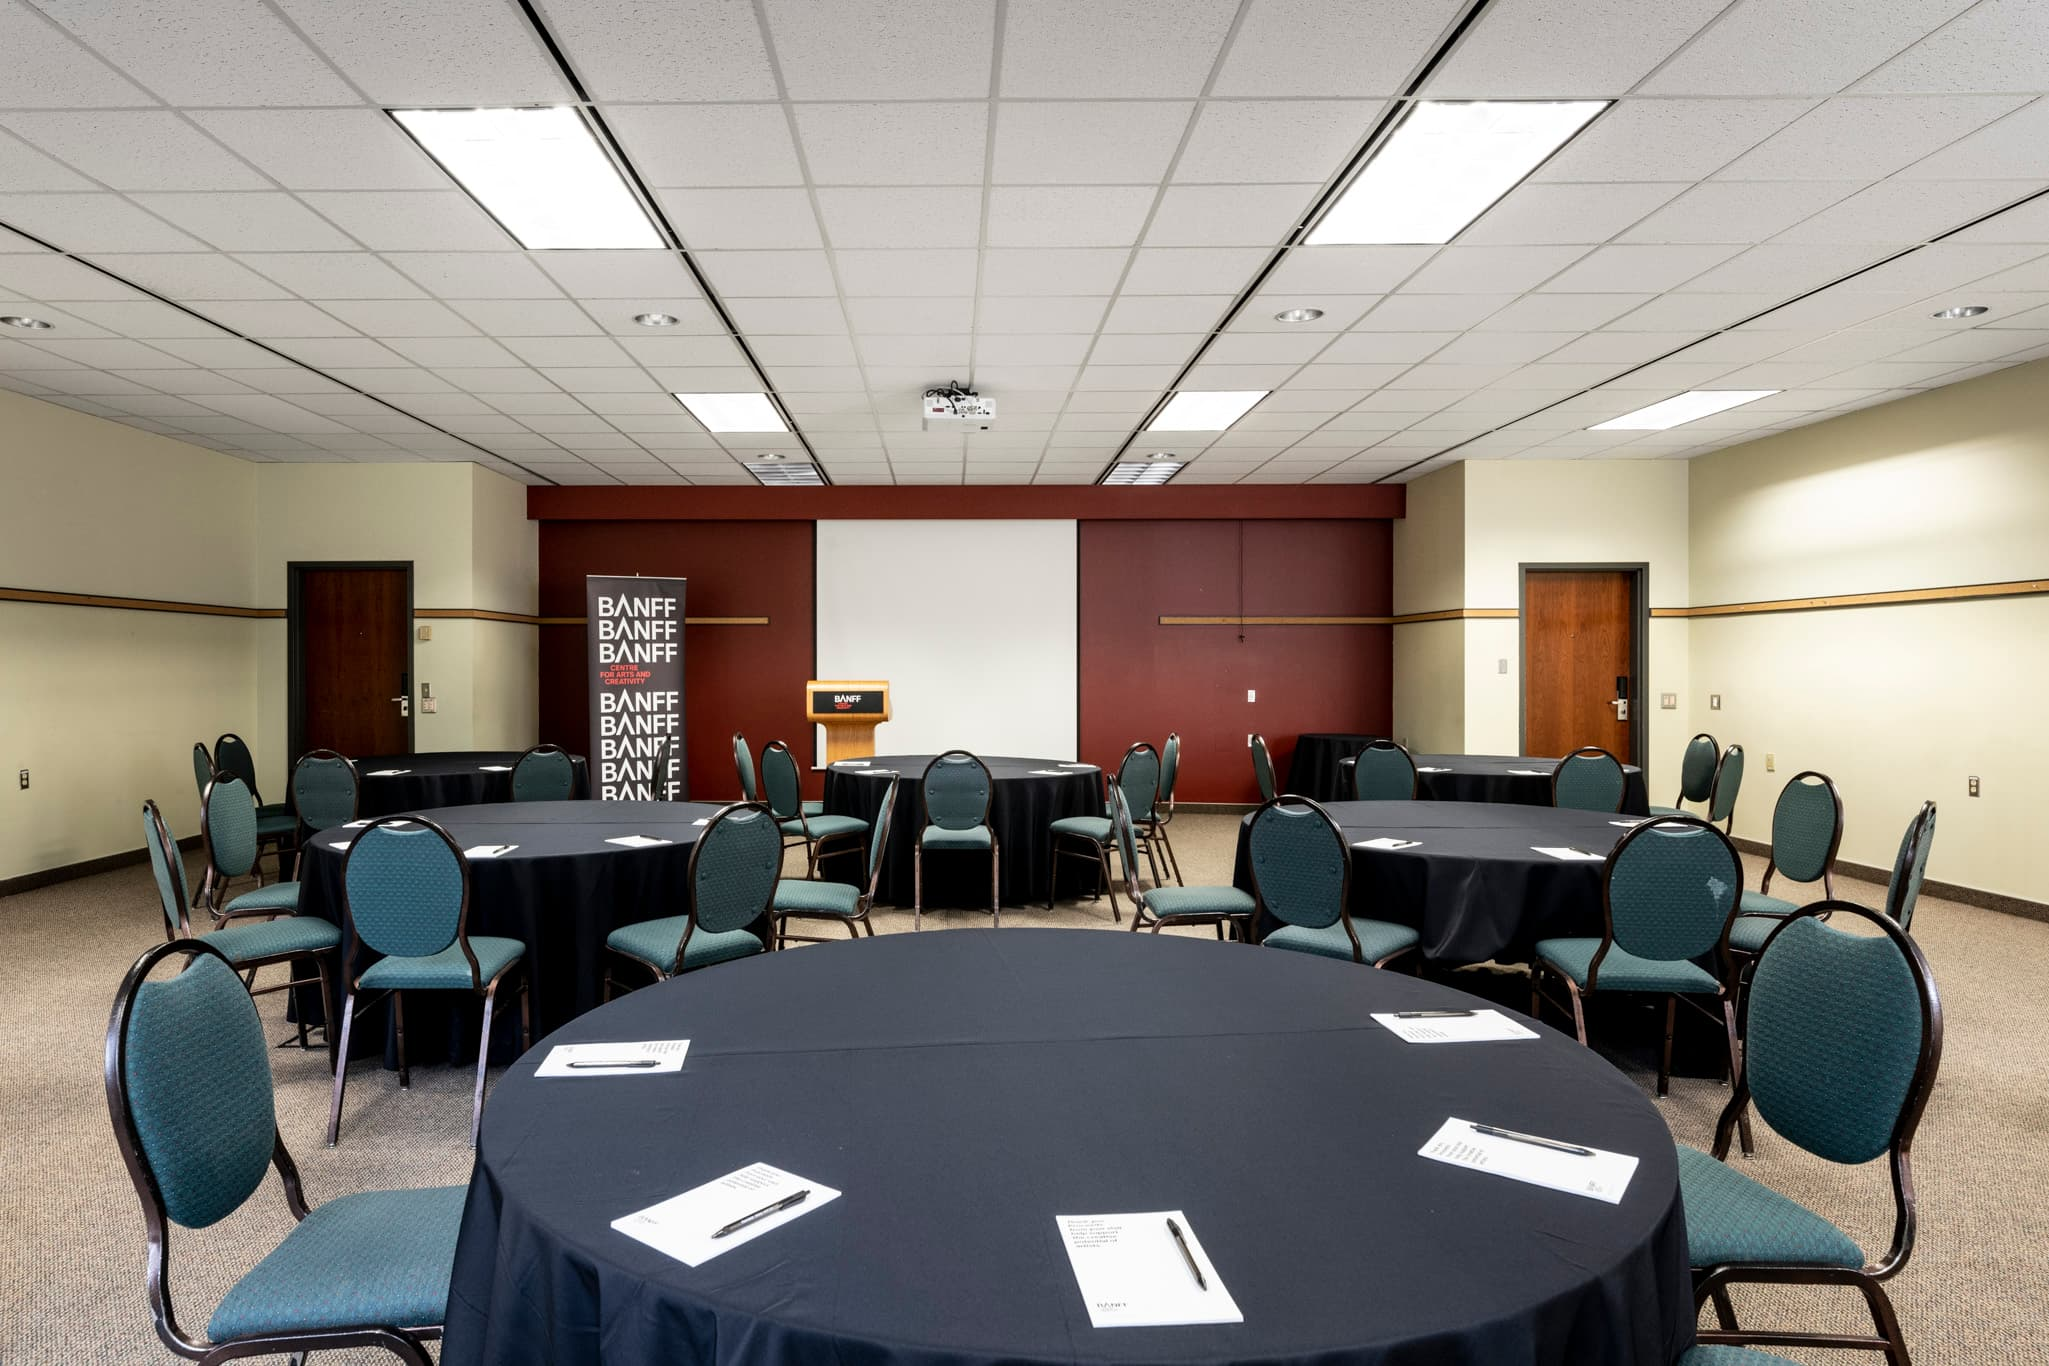 A conference space with round tables.